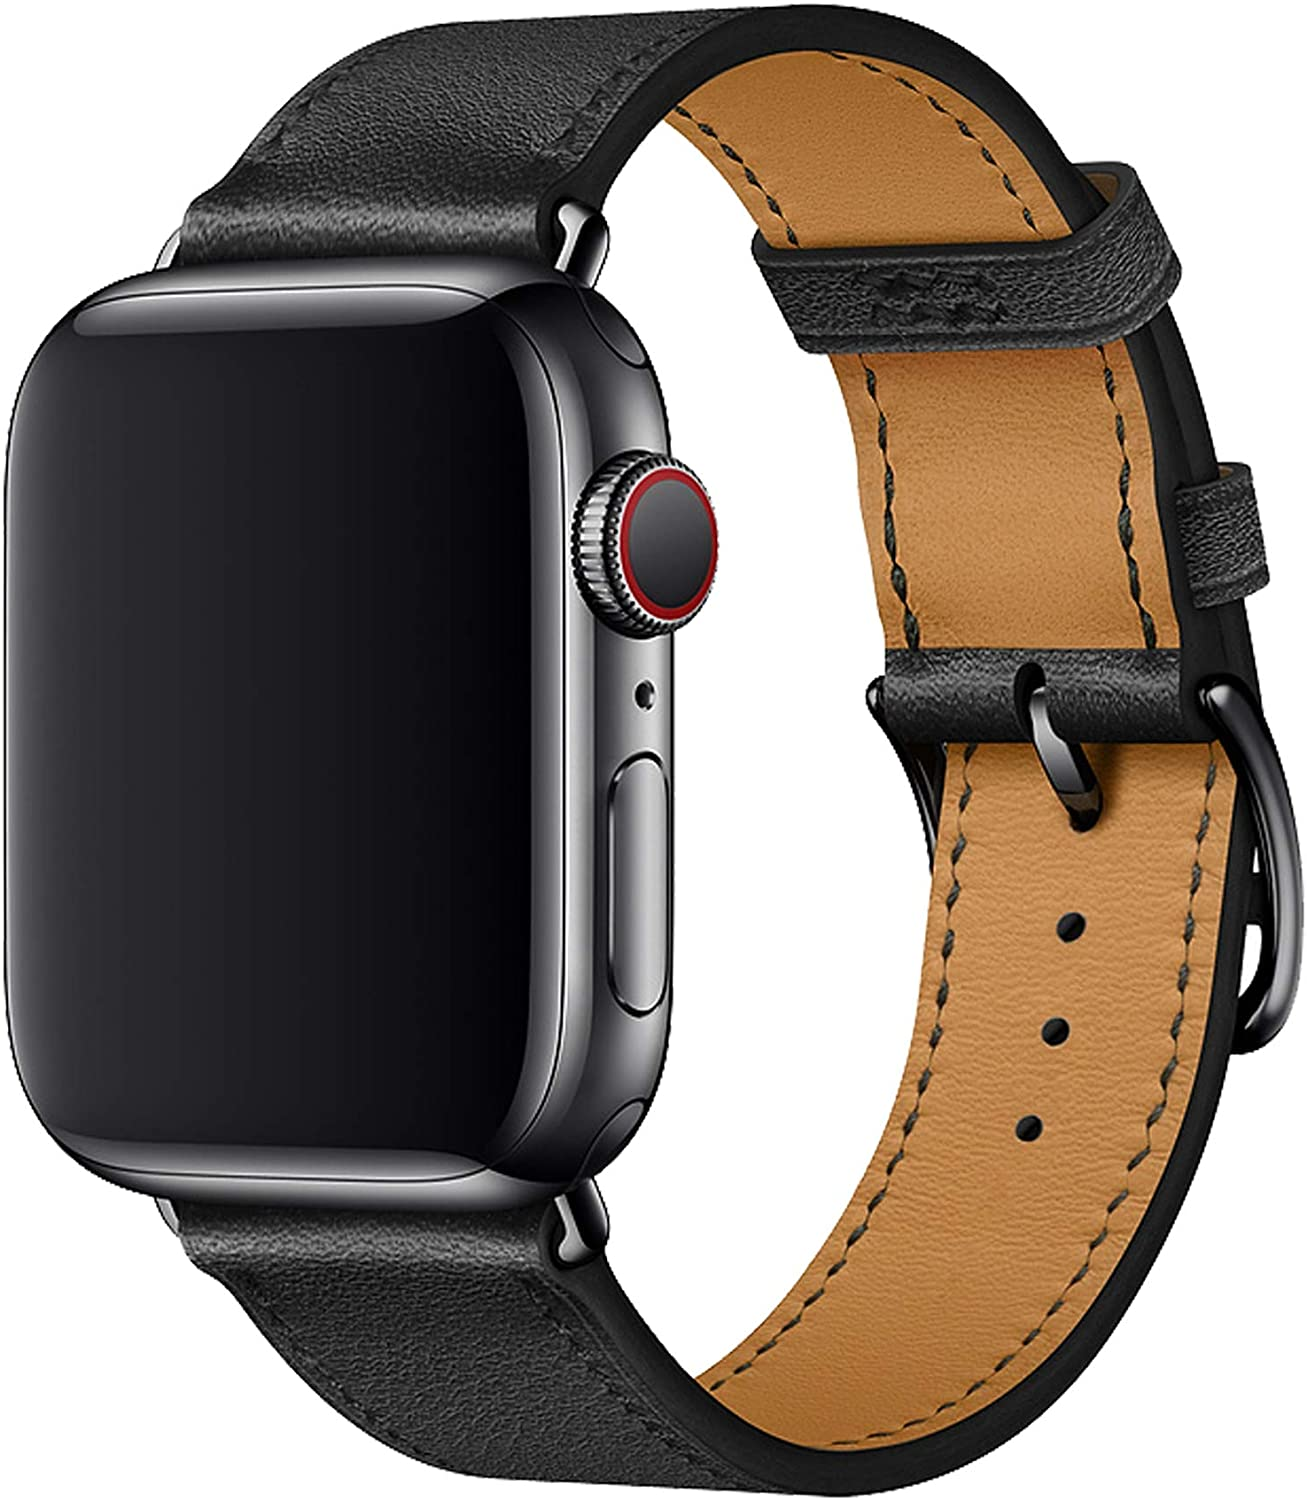 XCool Compatible con Correa Apple Watch 38mm 40mm, Cuero Negro para Hombres Mujer para iwatch SE Serie 6 Serie 5 Serie 4 Serie 3